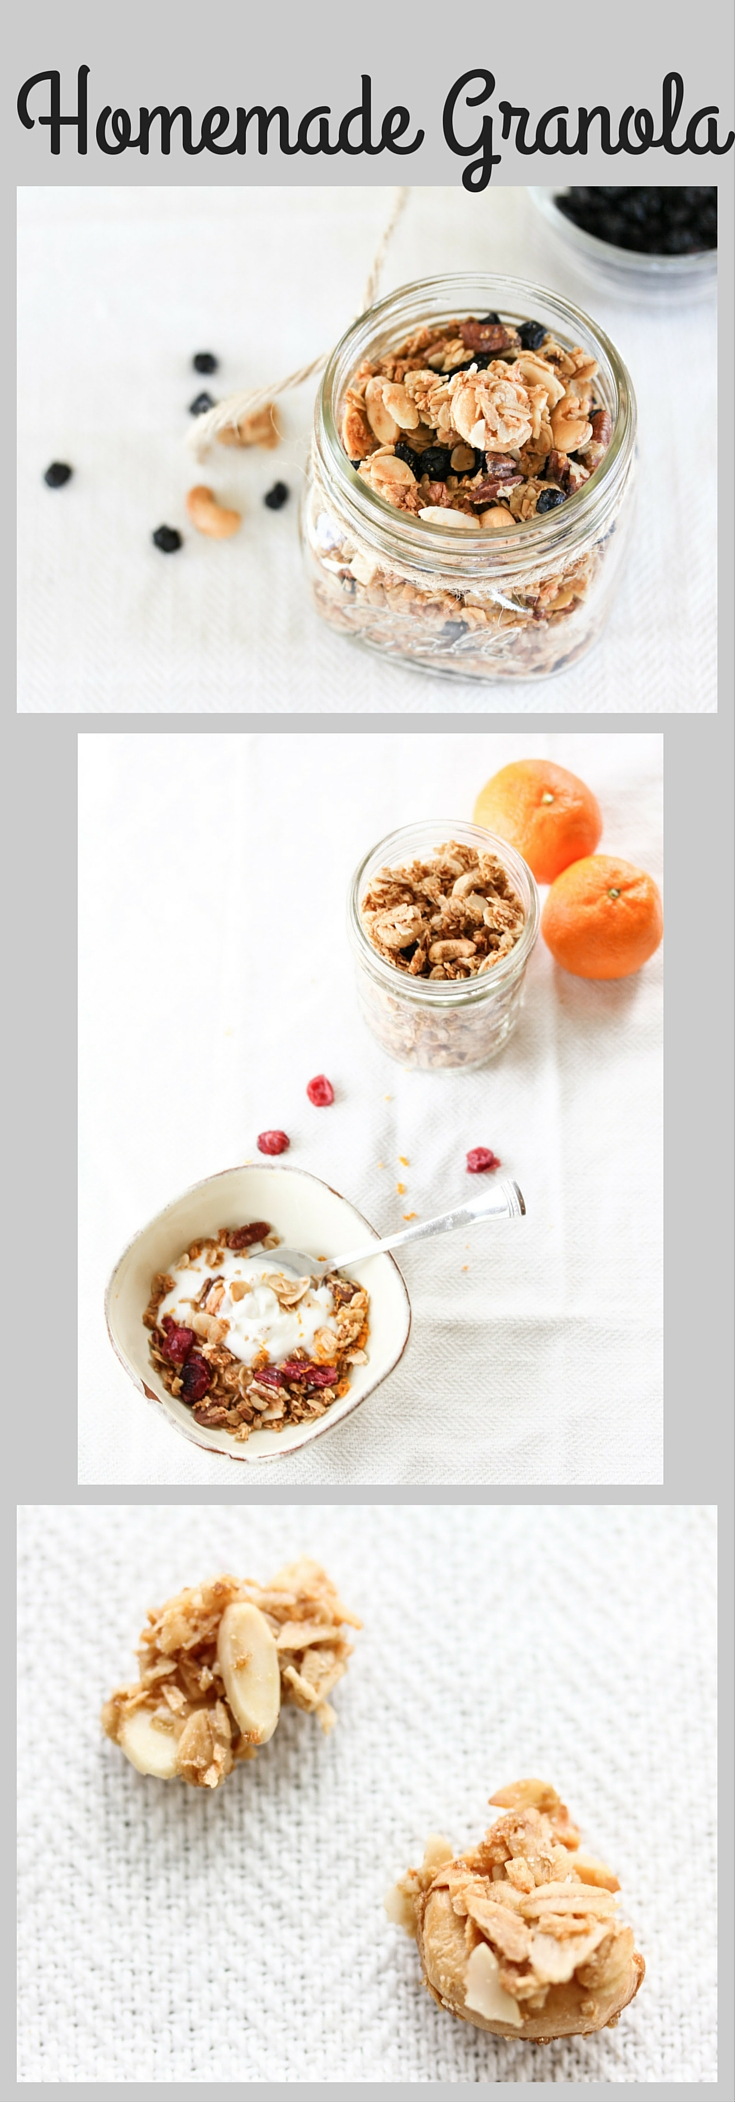 Homemade Granola. So delicious and easy.